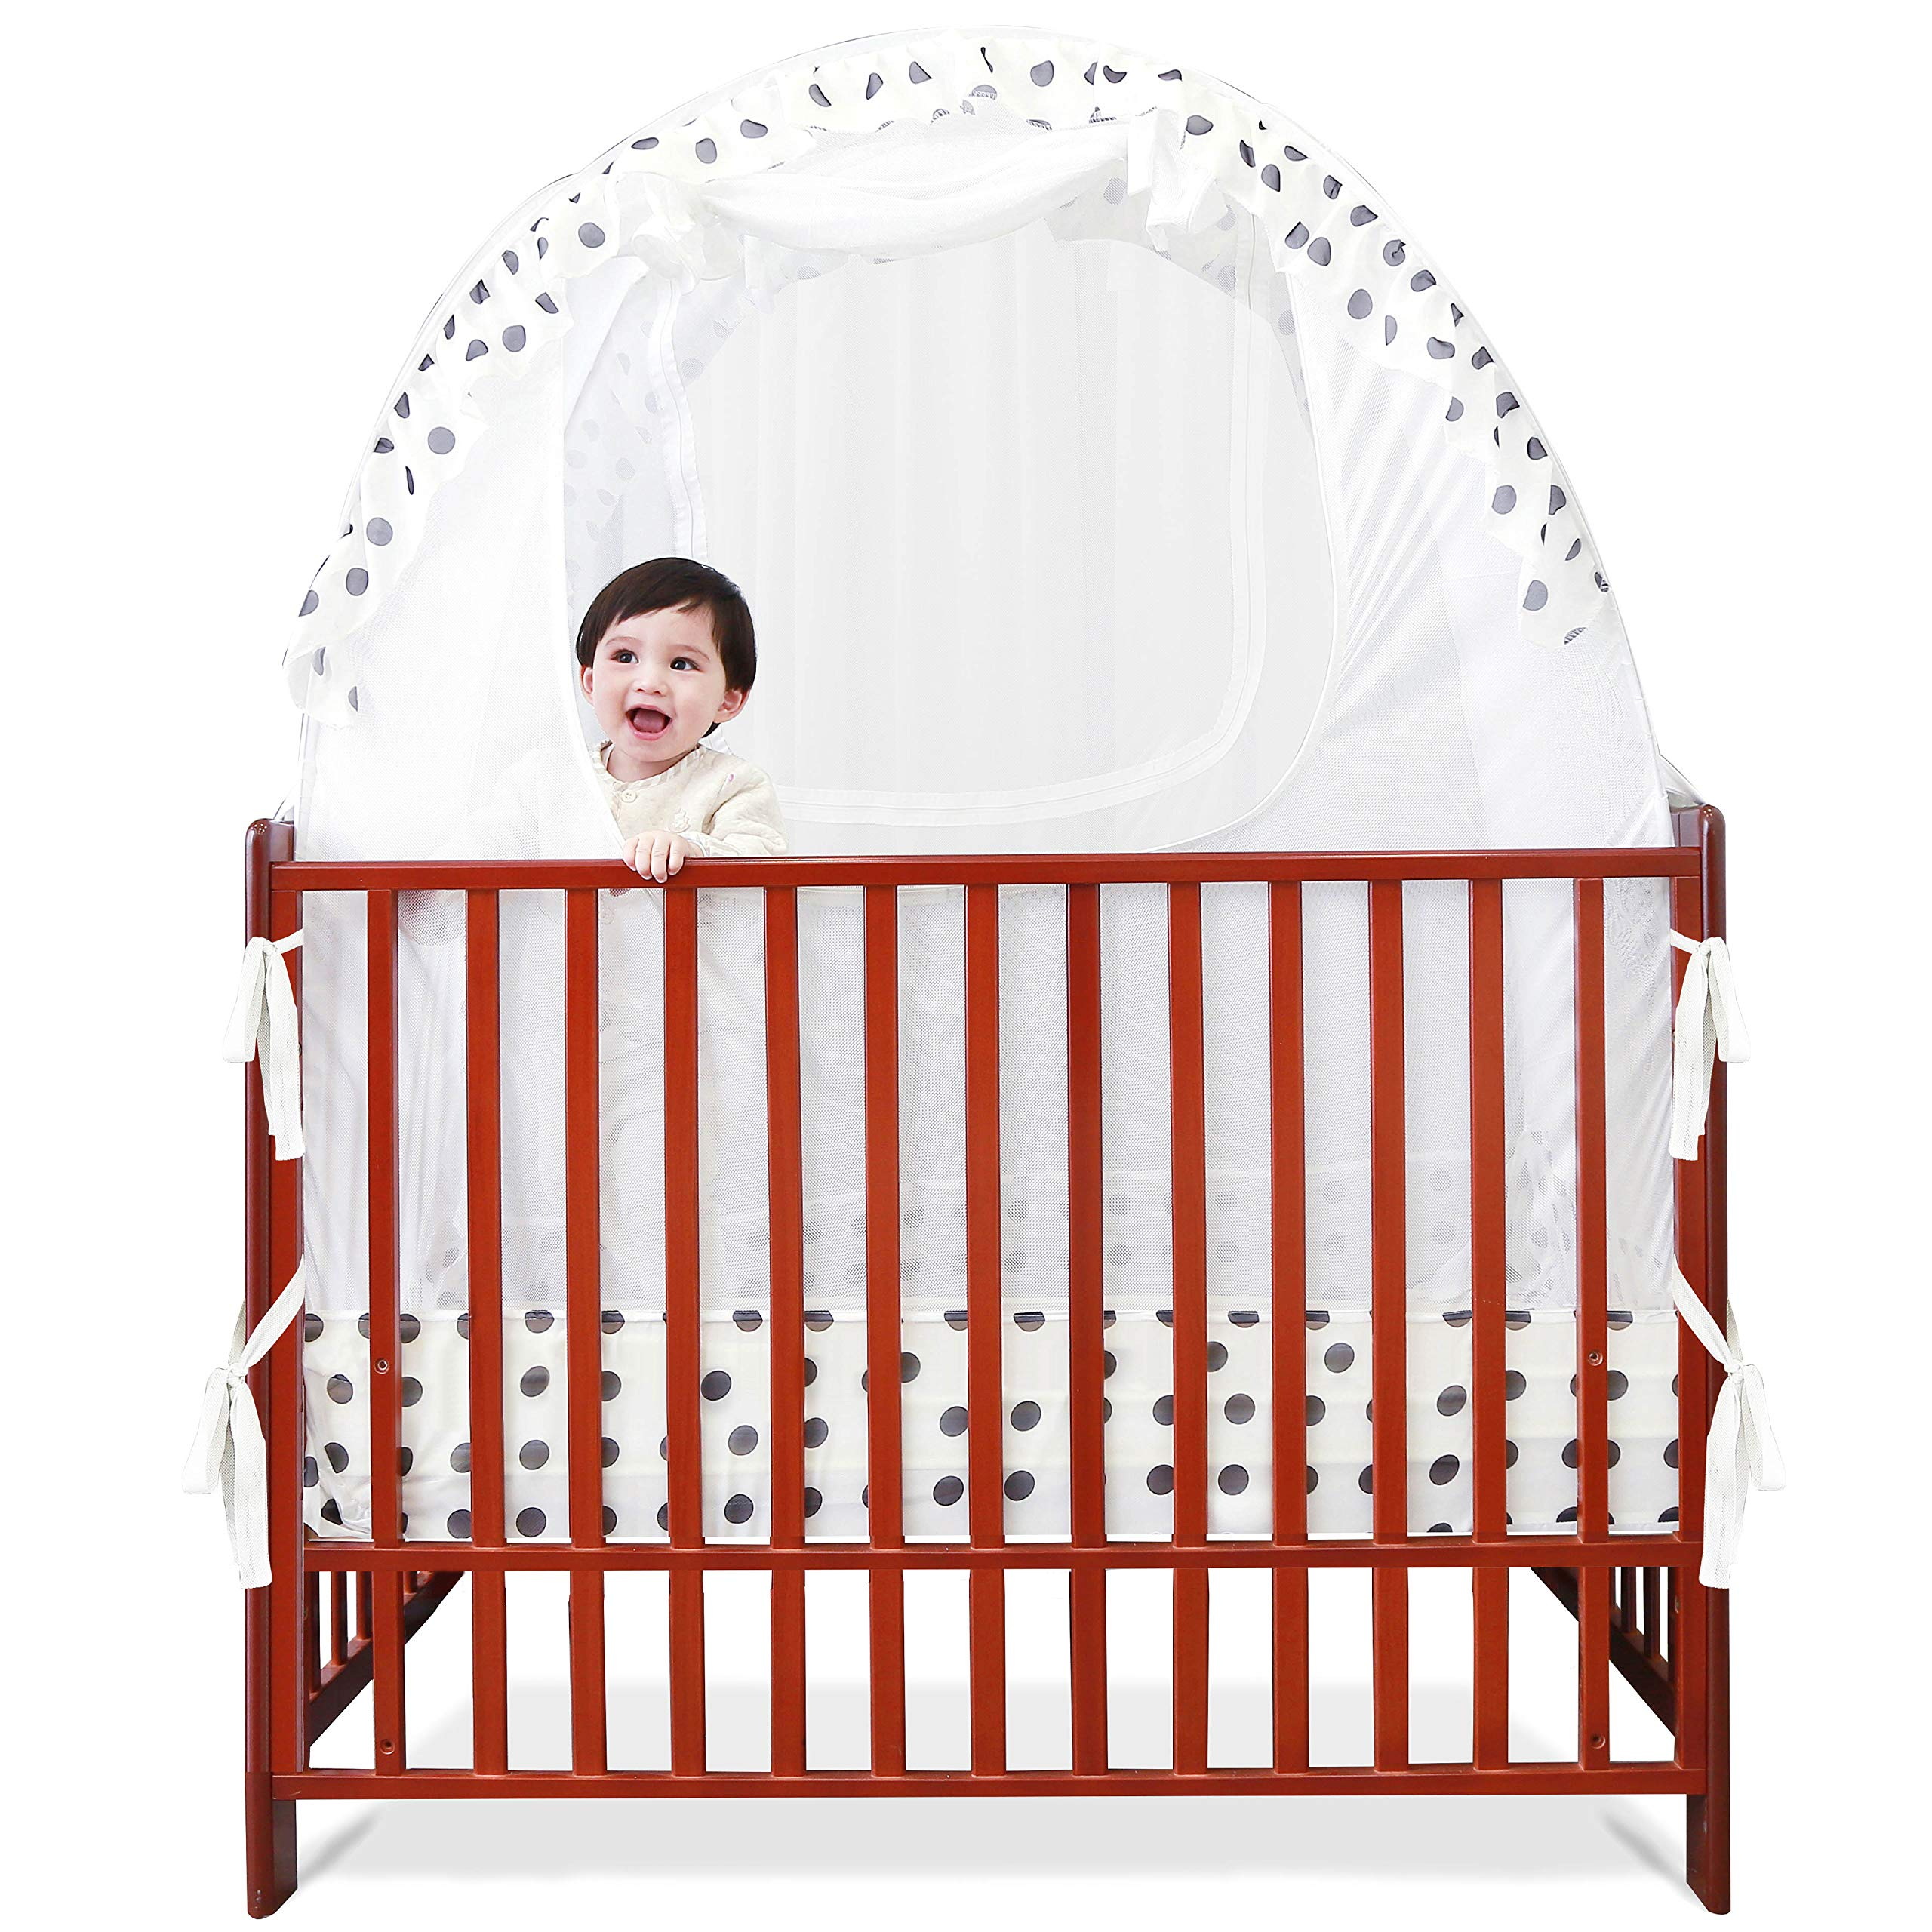 SDADI Baby Crib Safety Tent Pop Up Mosquito Net with Baby Monitor Hang Ribbon,Toddler Bed Canopy Netting Cover |Dots WLCN01D by SDADI (Image #6)